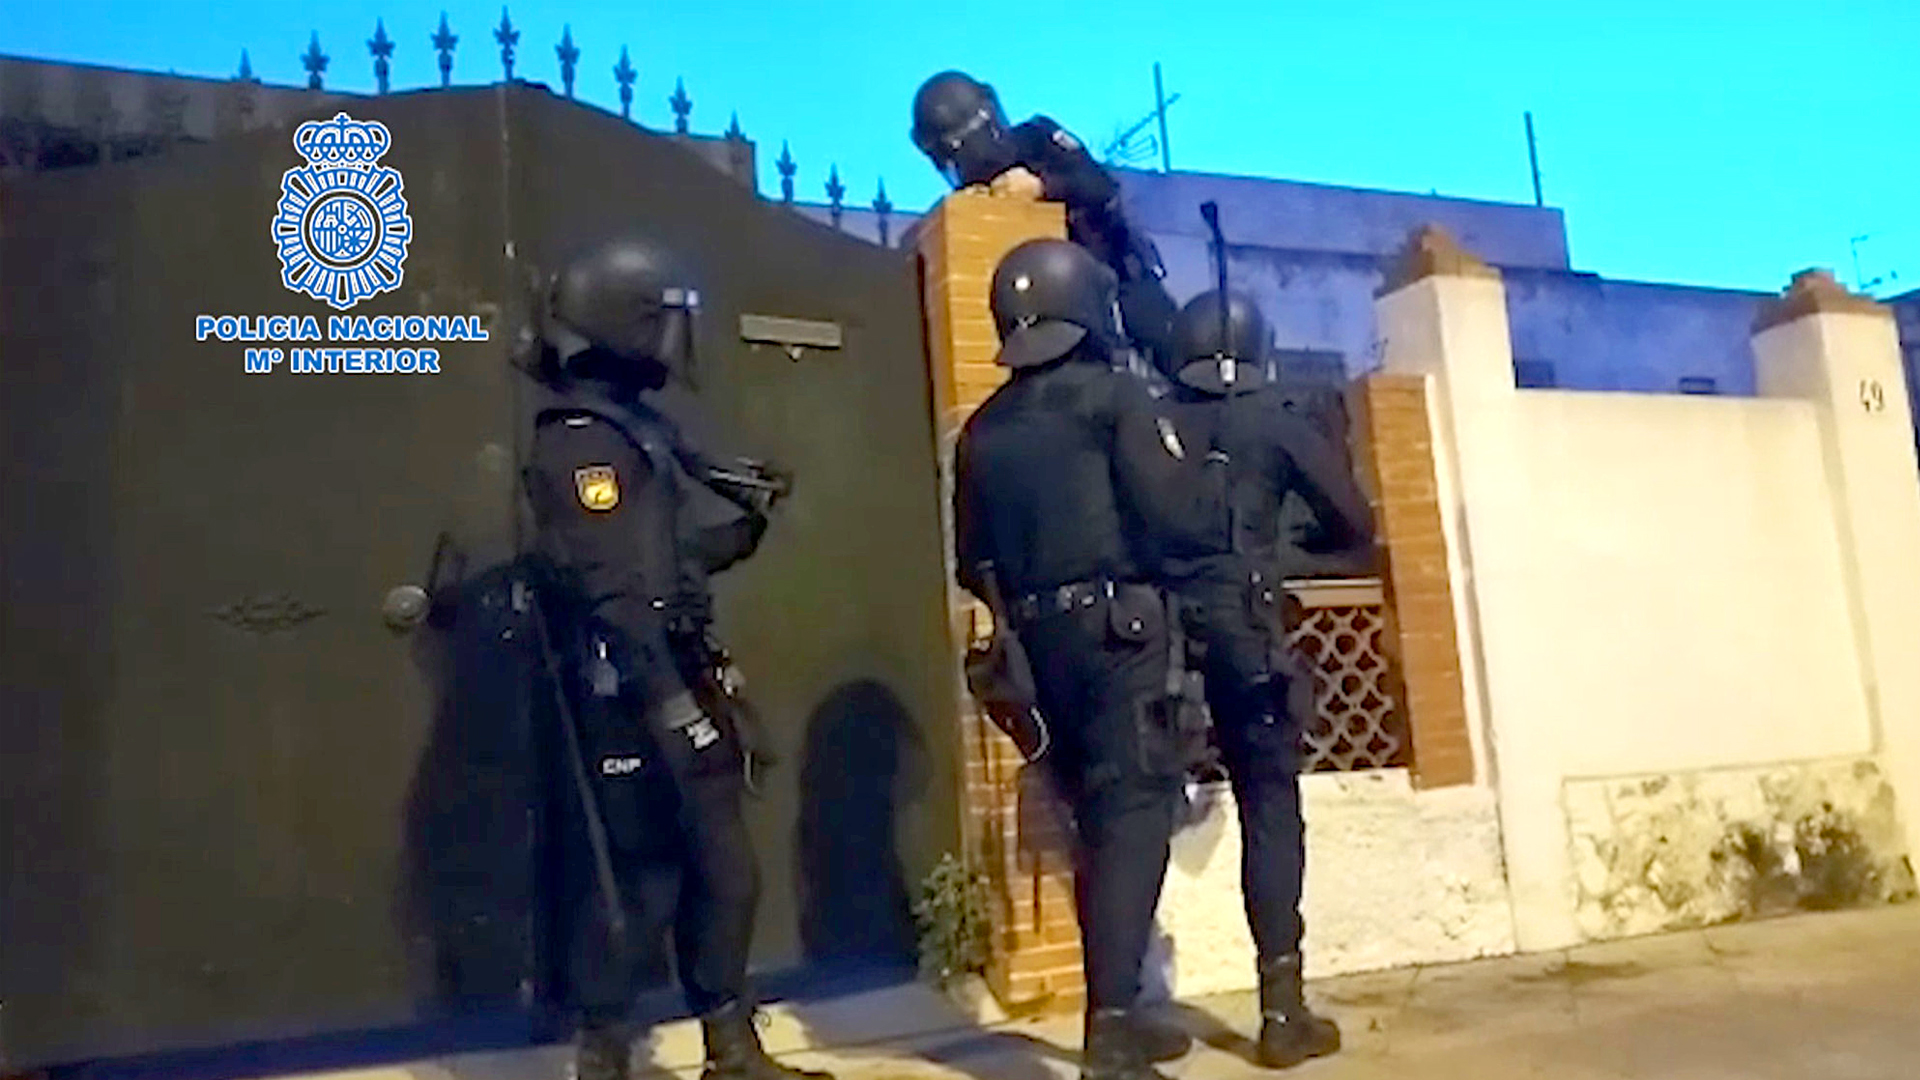 VIDEO: Puff Baddies: Police Seize Quarter Ton Of Cannabis And Coke To Shut Down Trafficking Network